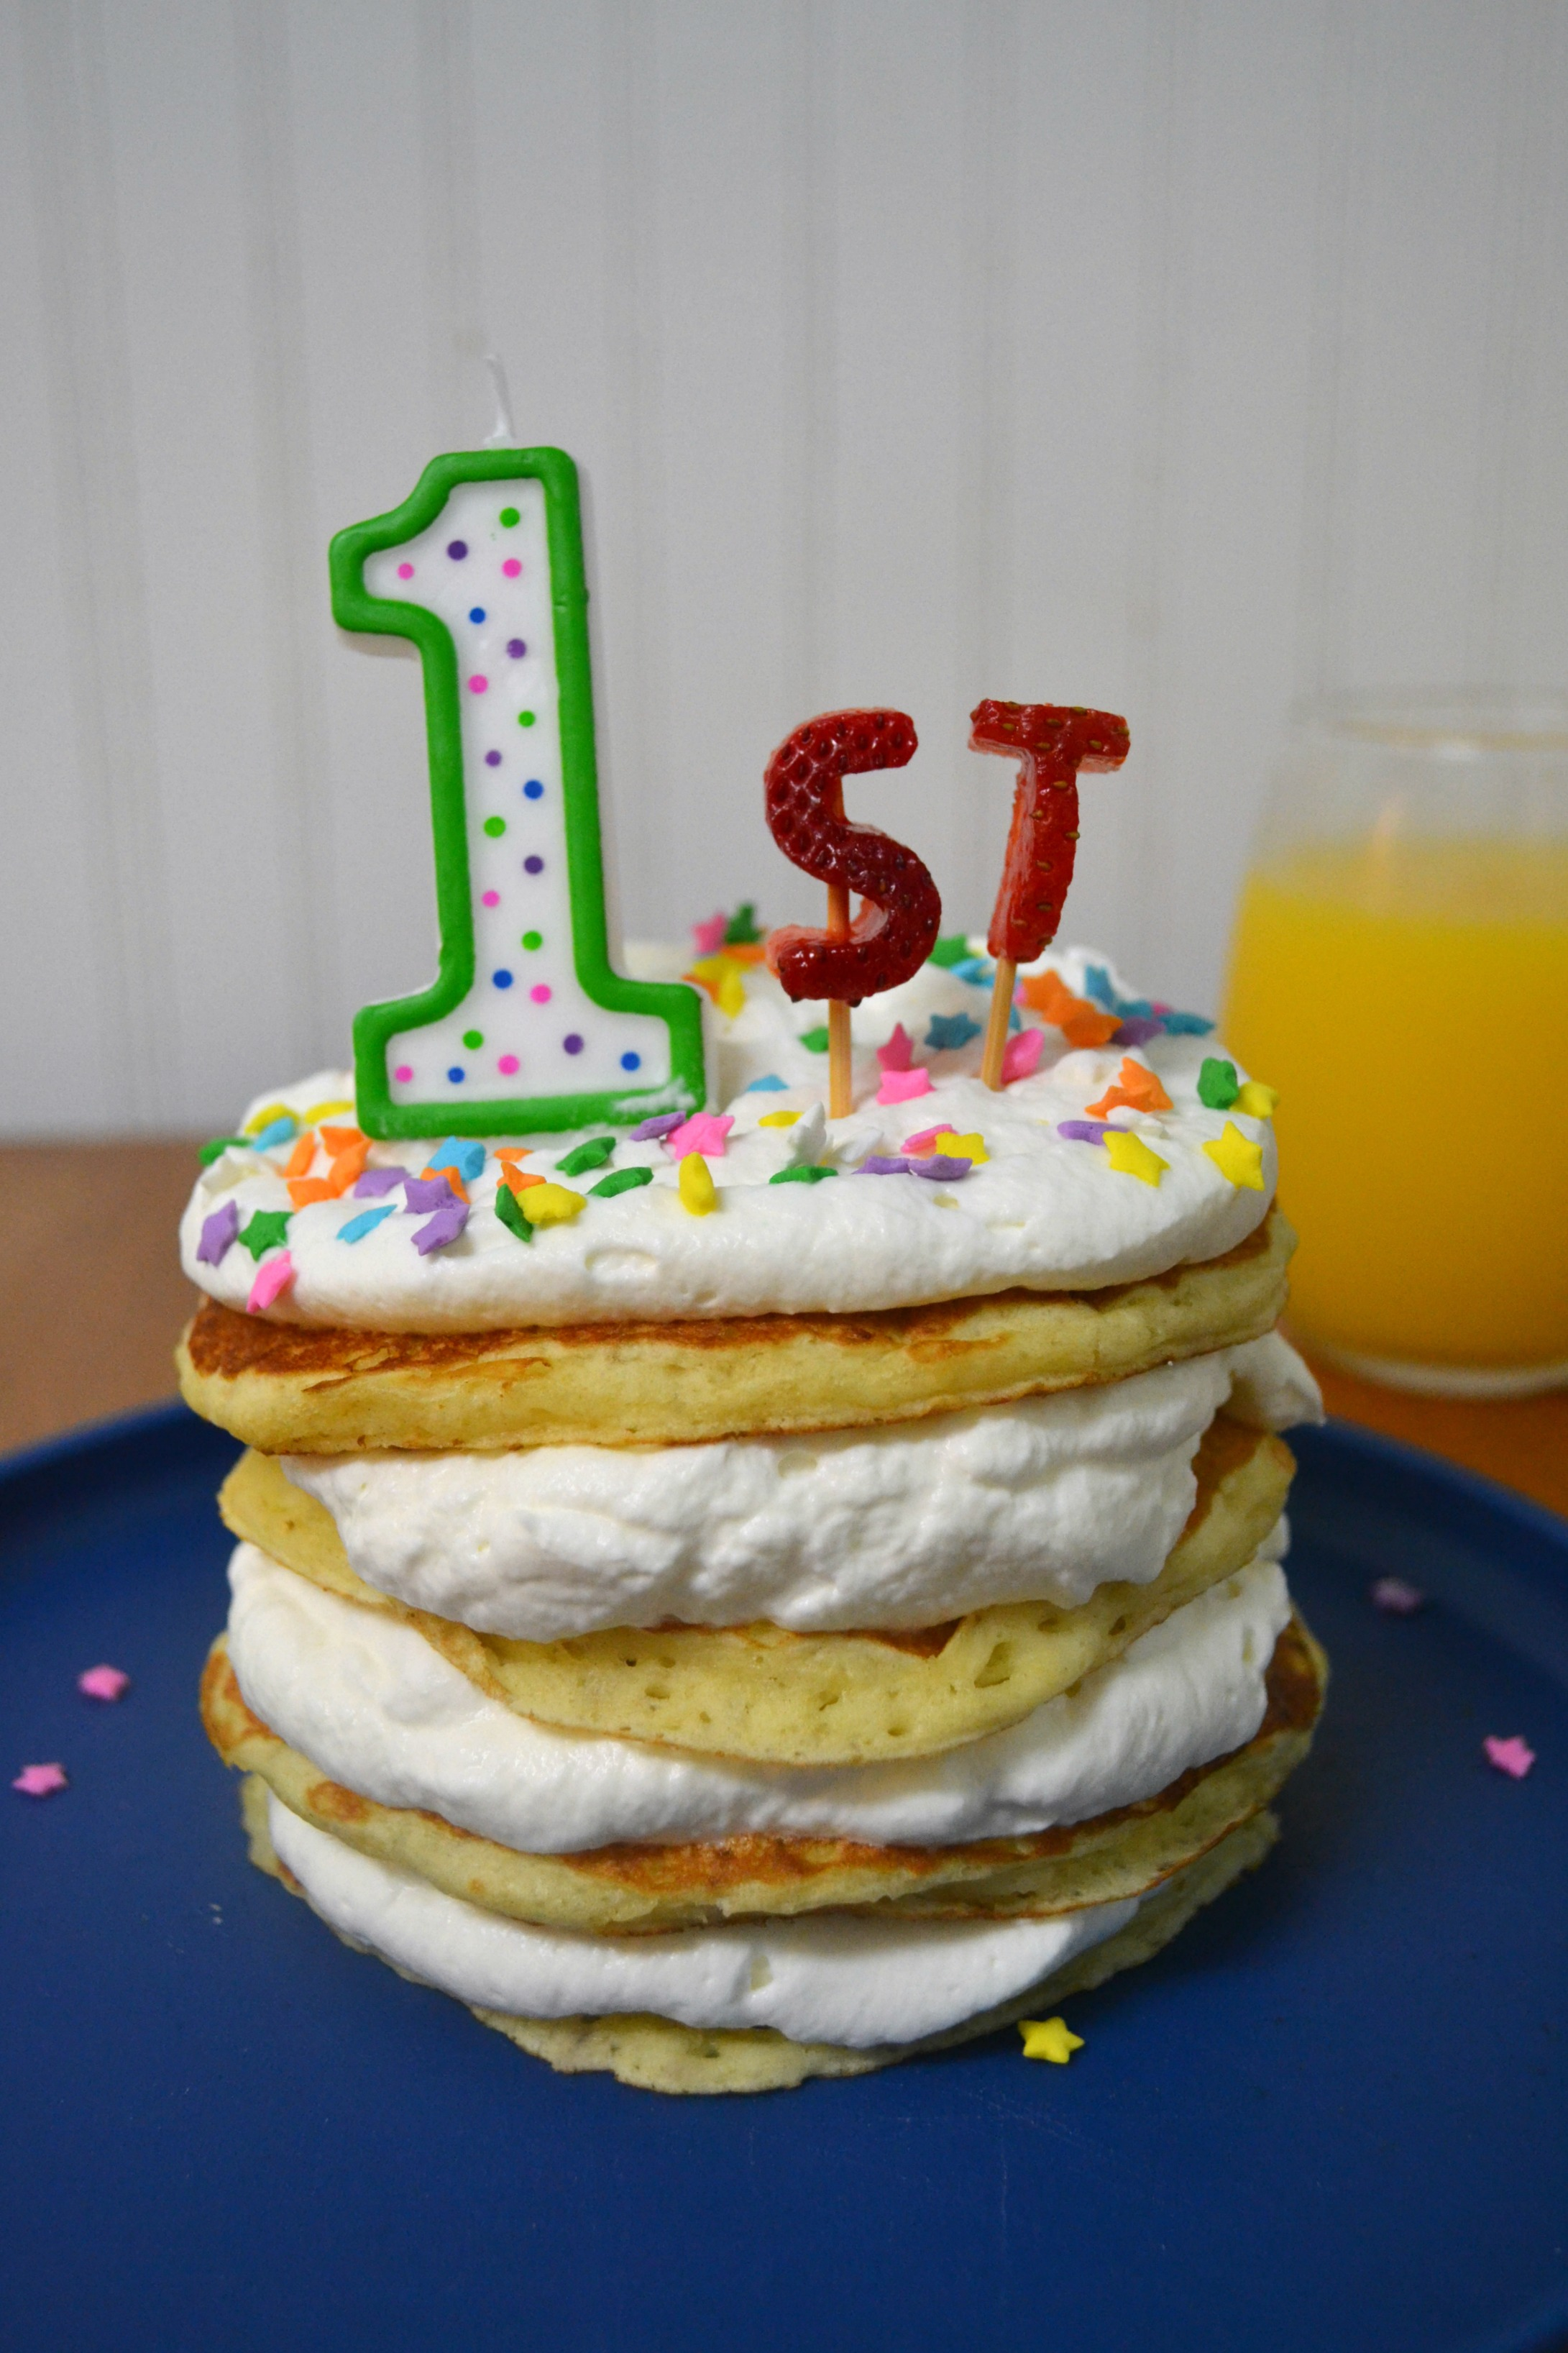 a stack of pancakes with whipped cream, sprinkles, and a #1 candle for the first day of school.